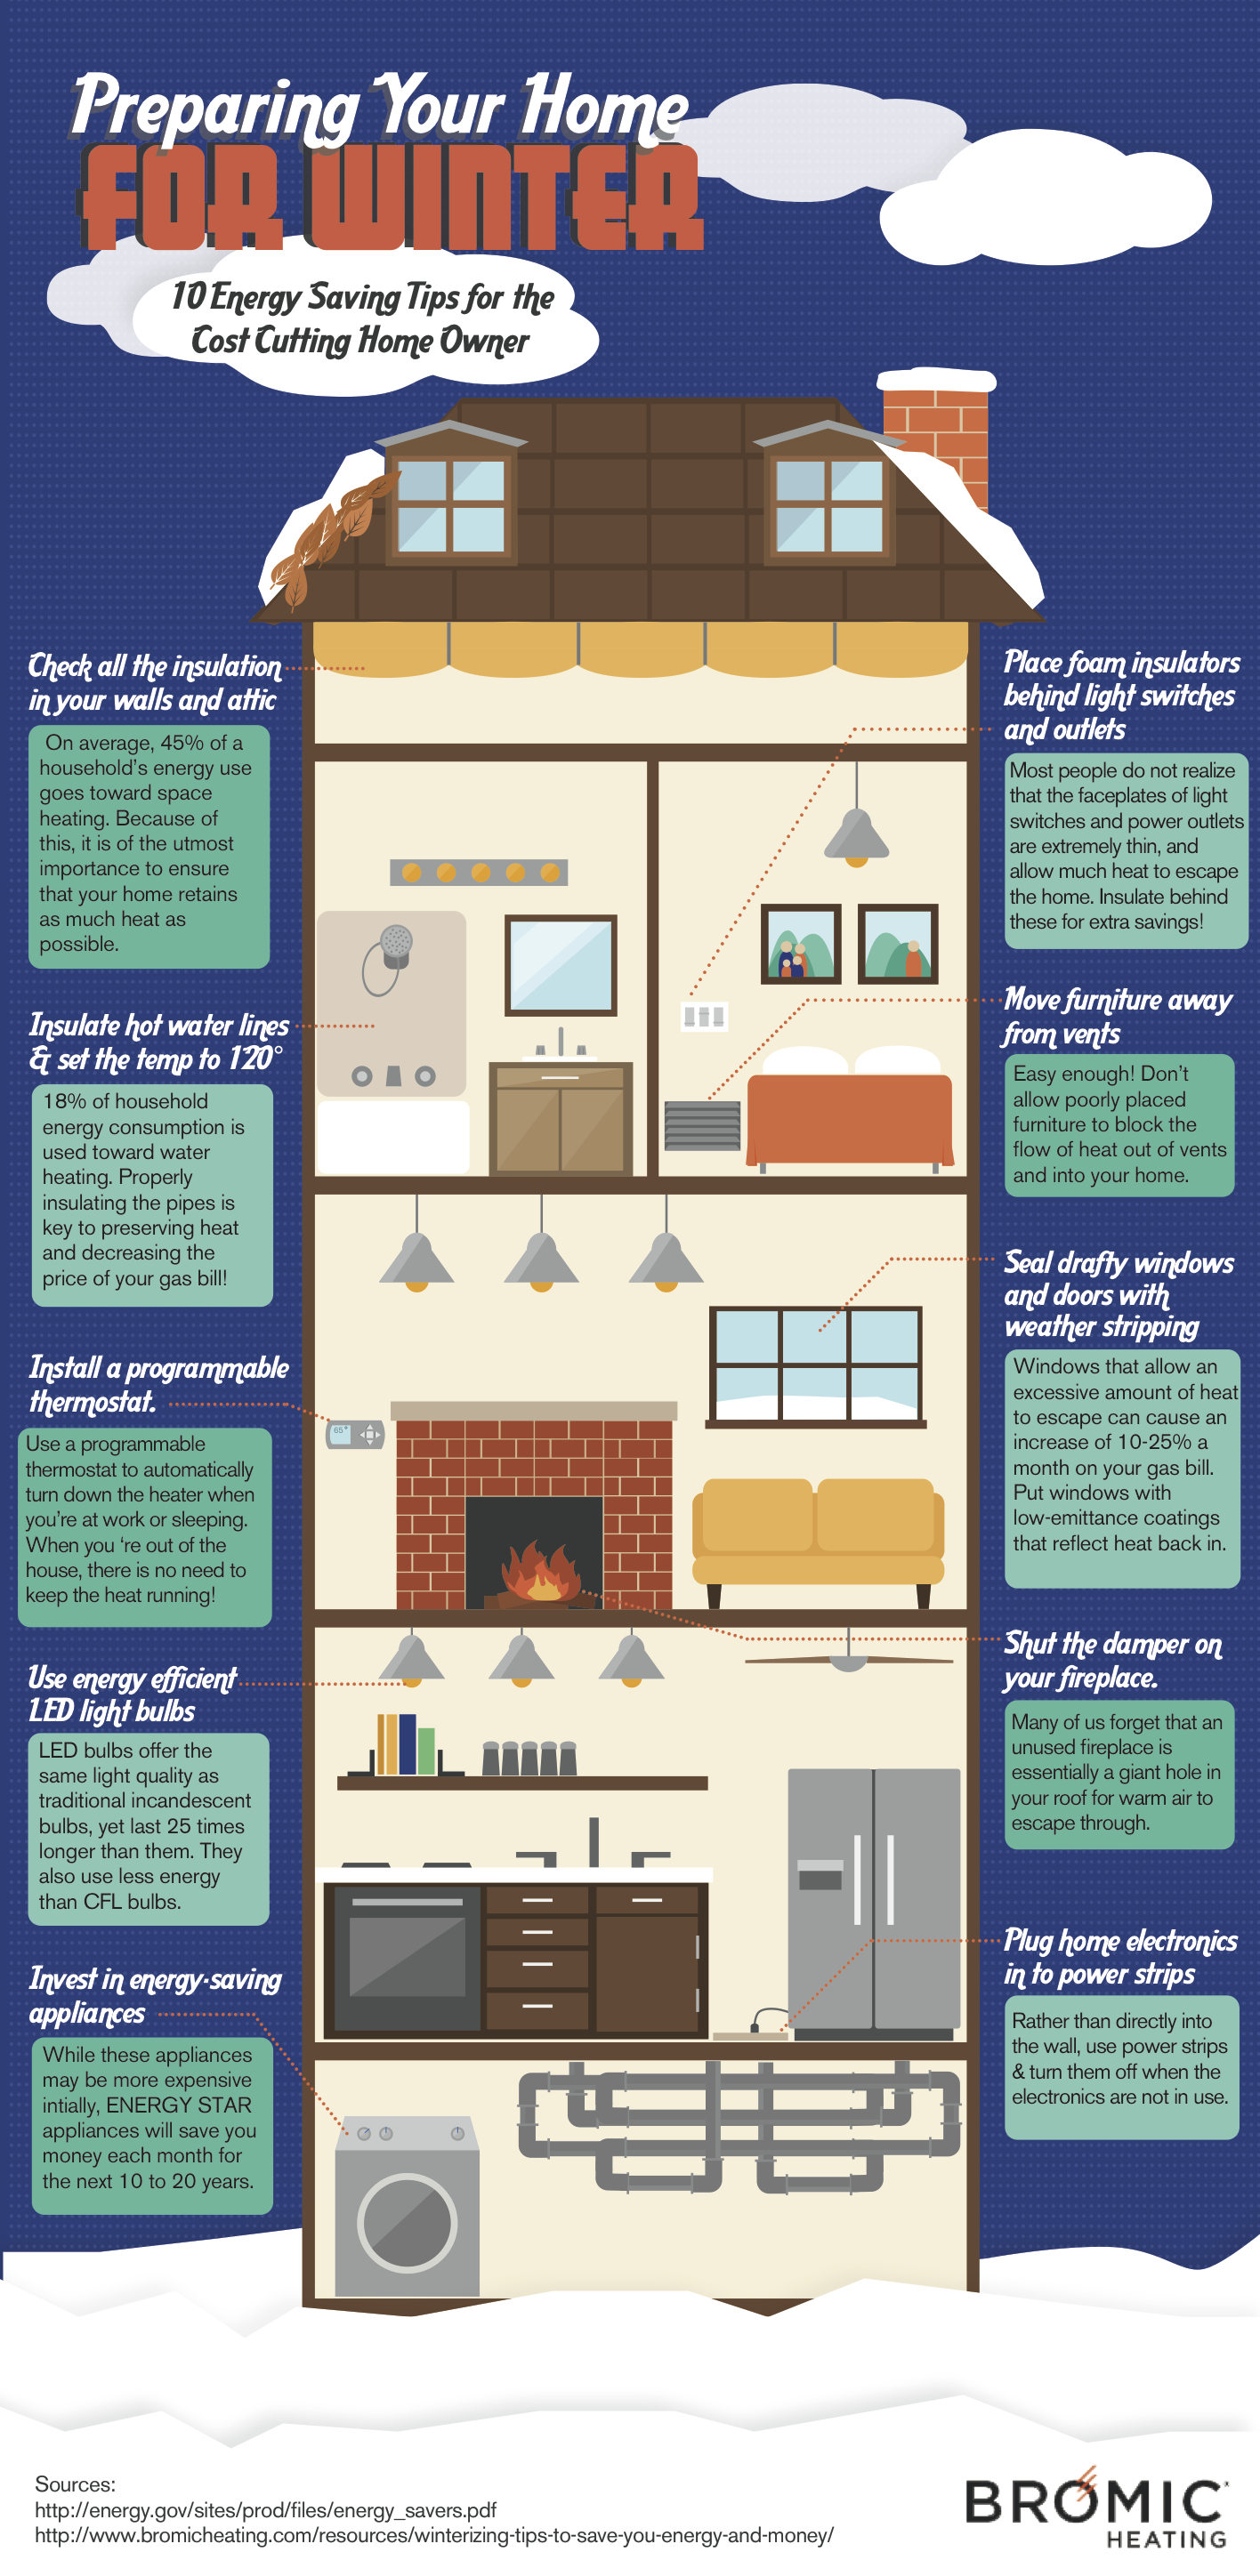 Preparing Your Home For Winter  10 Energy Saving Tips Via